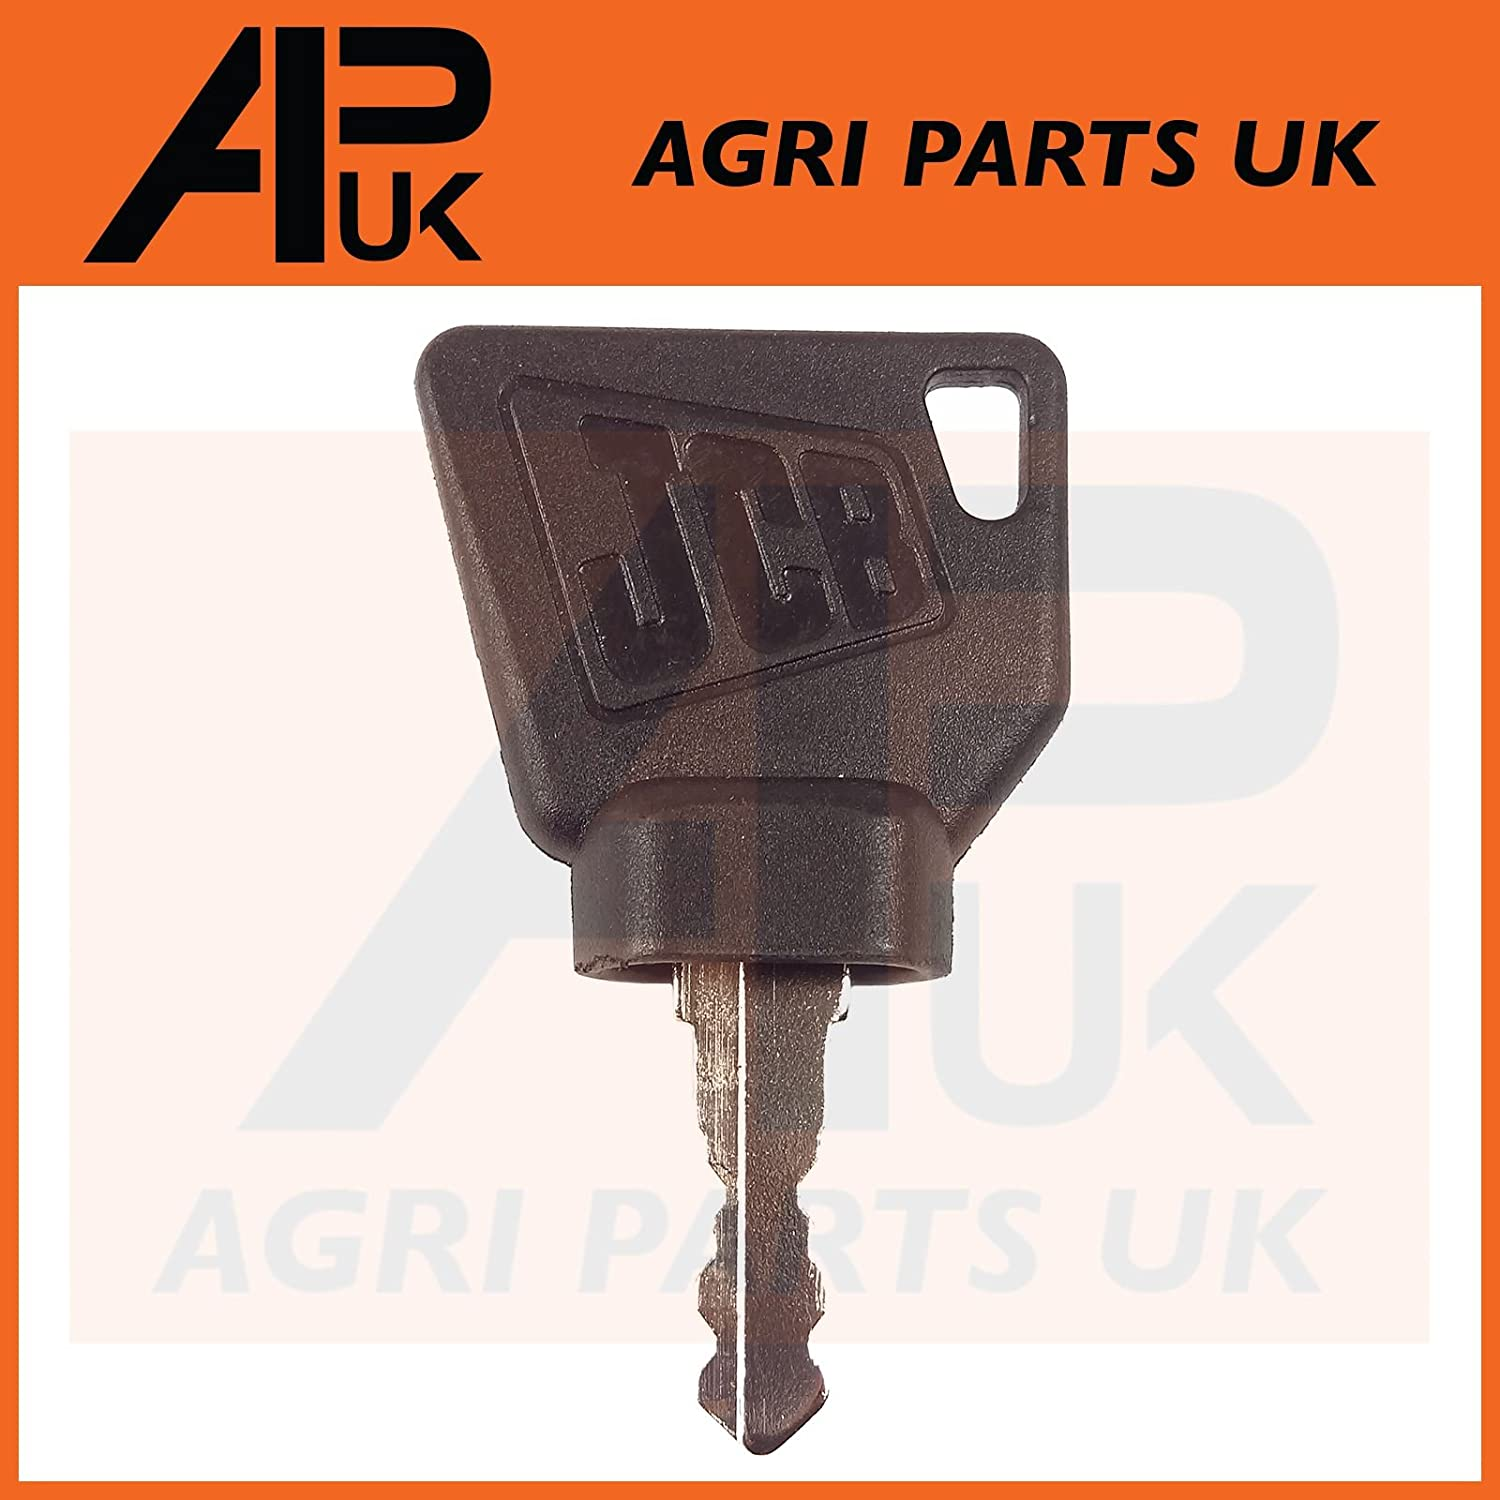 APUK 8 Pack Universal Ignition Switch Keys Tractor Digger Forklift Compatible with JCB Lucas Metal